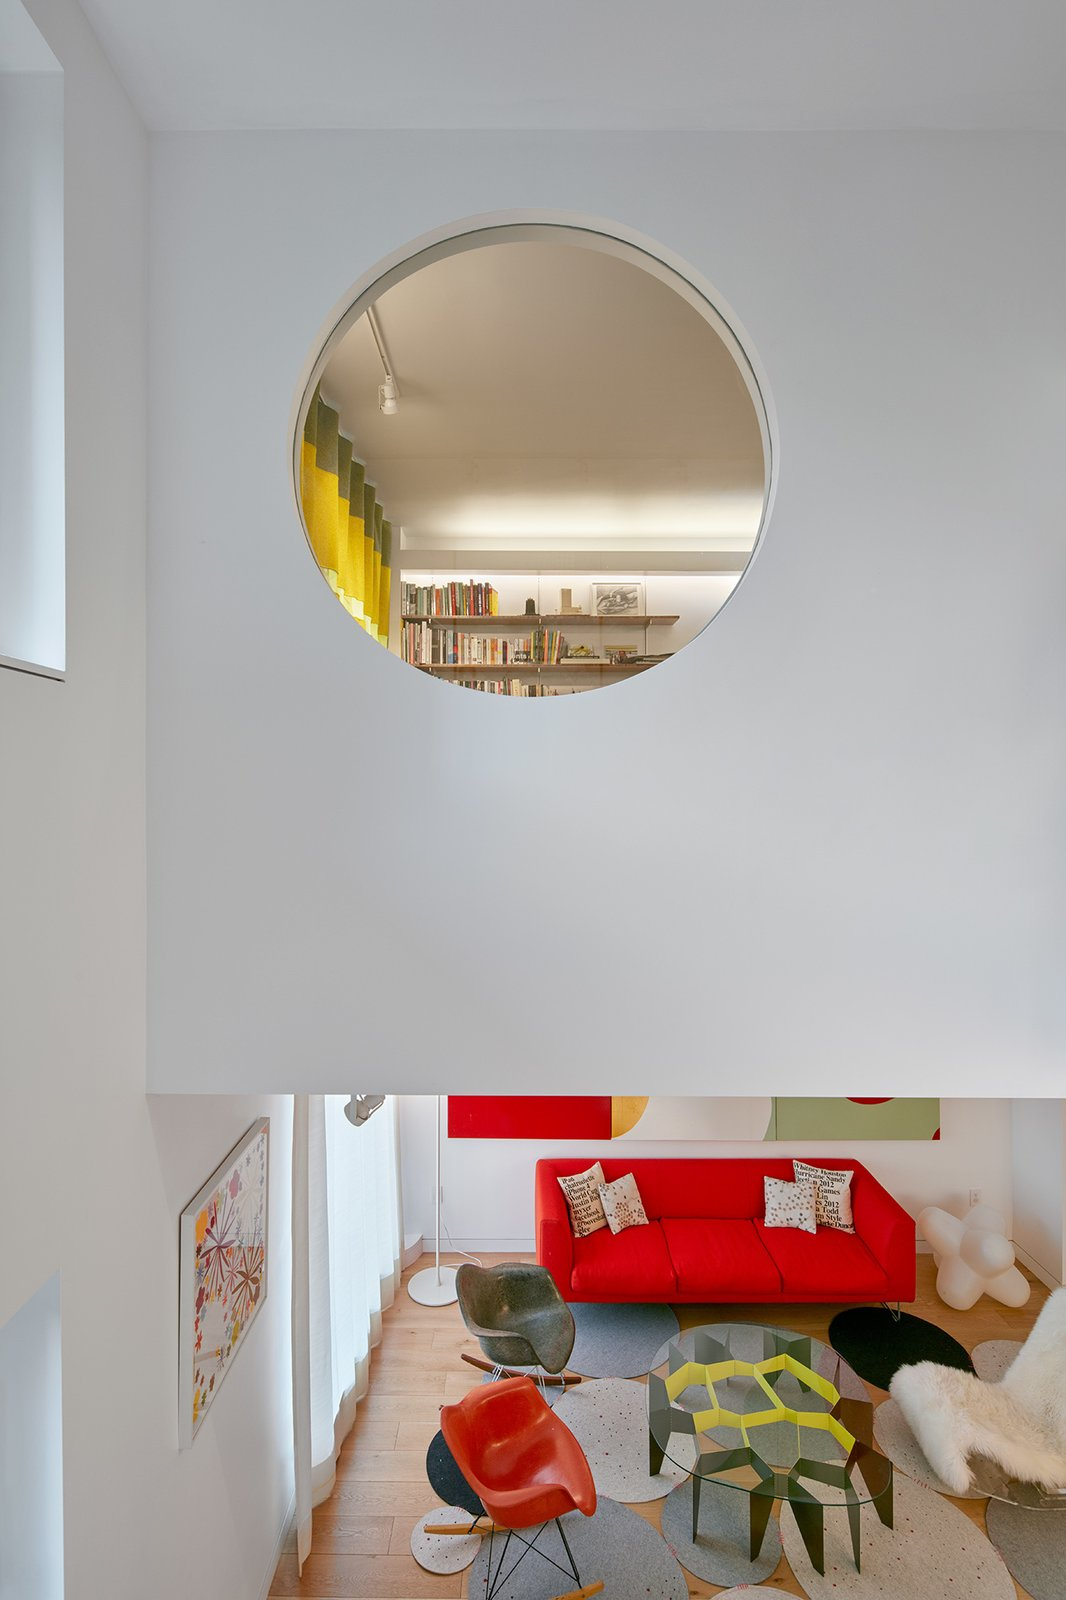 Via The Architect's Newspaper, photo courtesy of Bruce Damonte  Photo 5 of 11 in This Week's 10 Best Houses